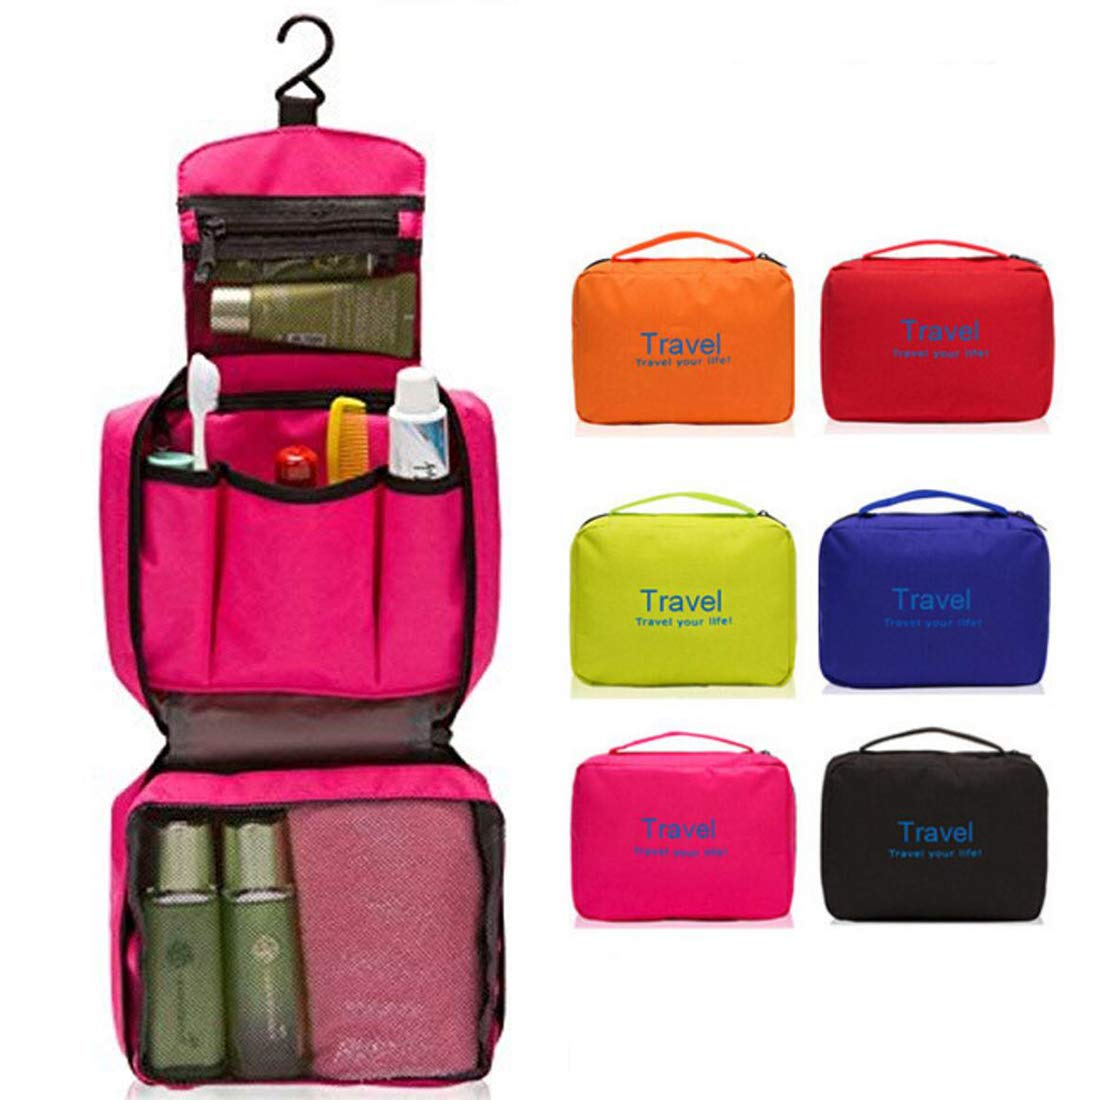 SunKni Travel Toiletry Bag Hanging Cosmetic Makeup Organizer Bag Kit Compact Portable Pouch for Women Girls Kids Personal Accessories, Large Capacity Waterproof Multi Function with Hook Rose Red